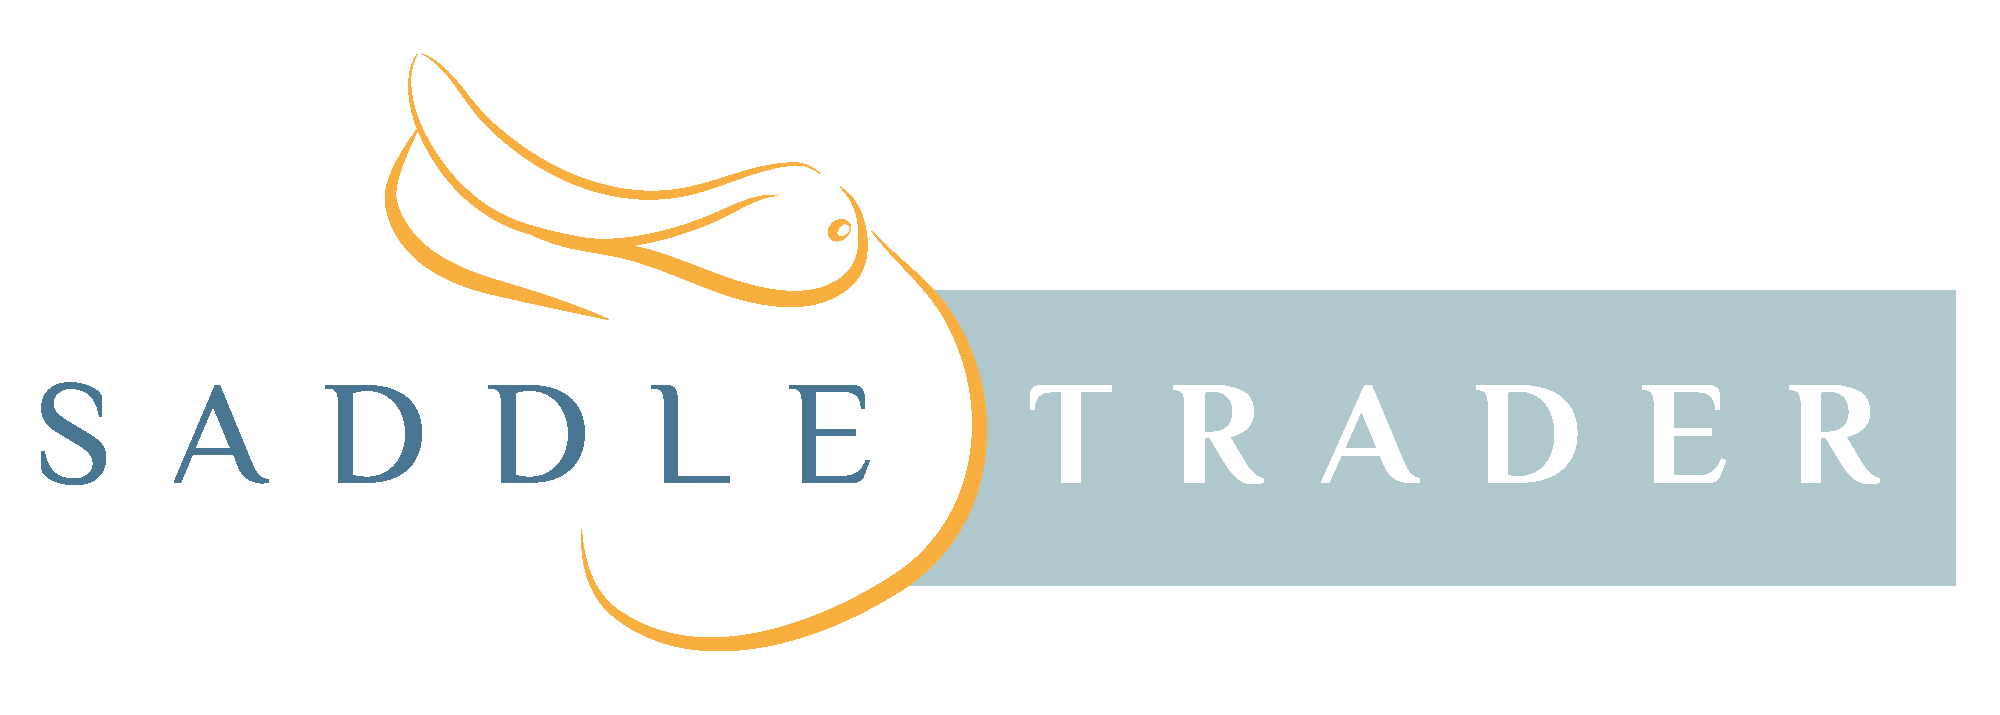 saddle trader logo